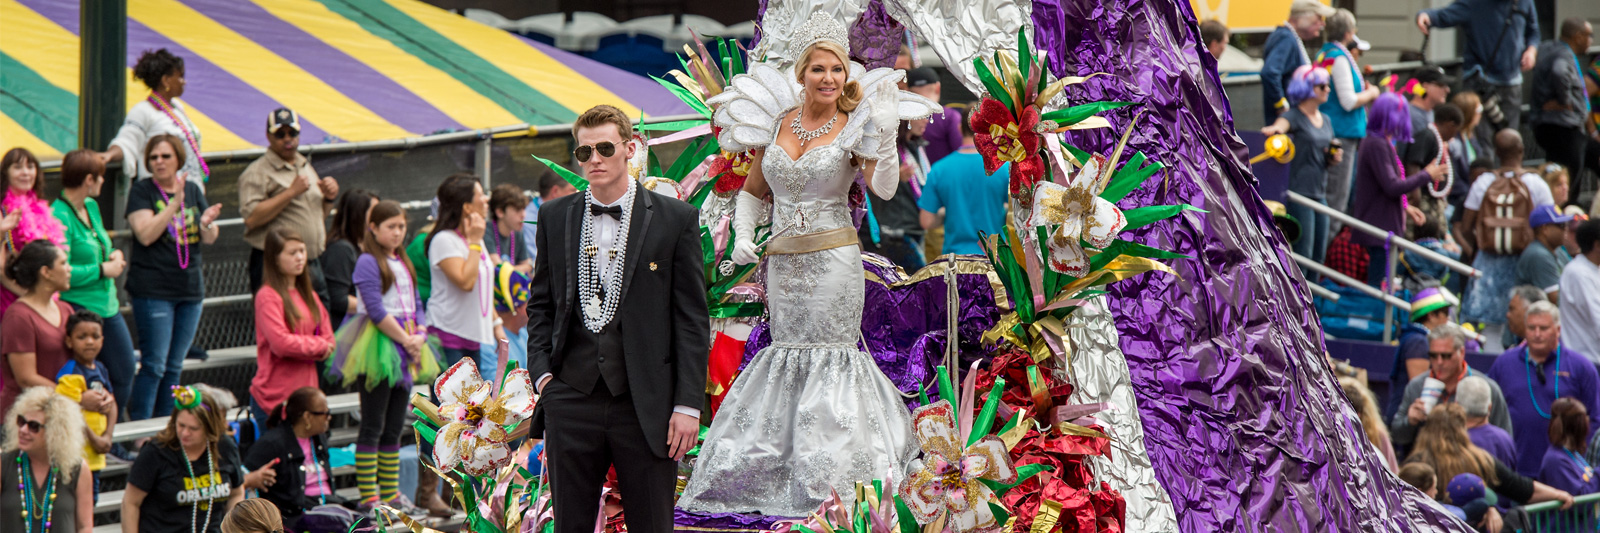 mardigras_photo_15